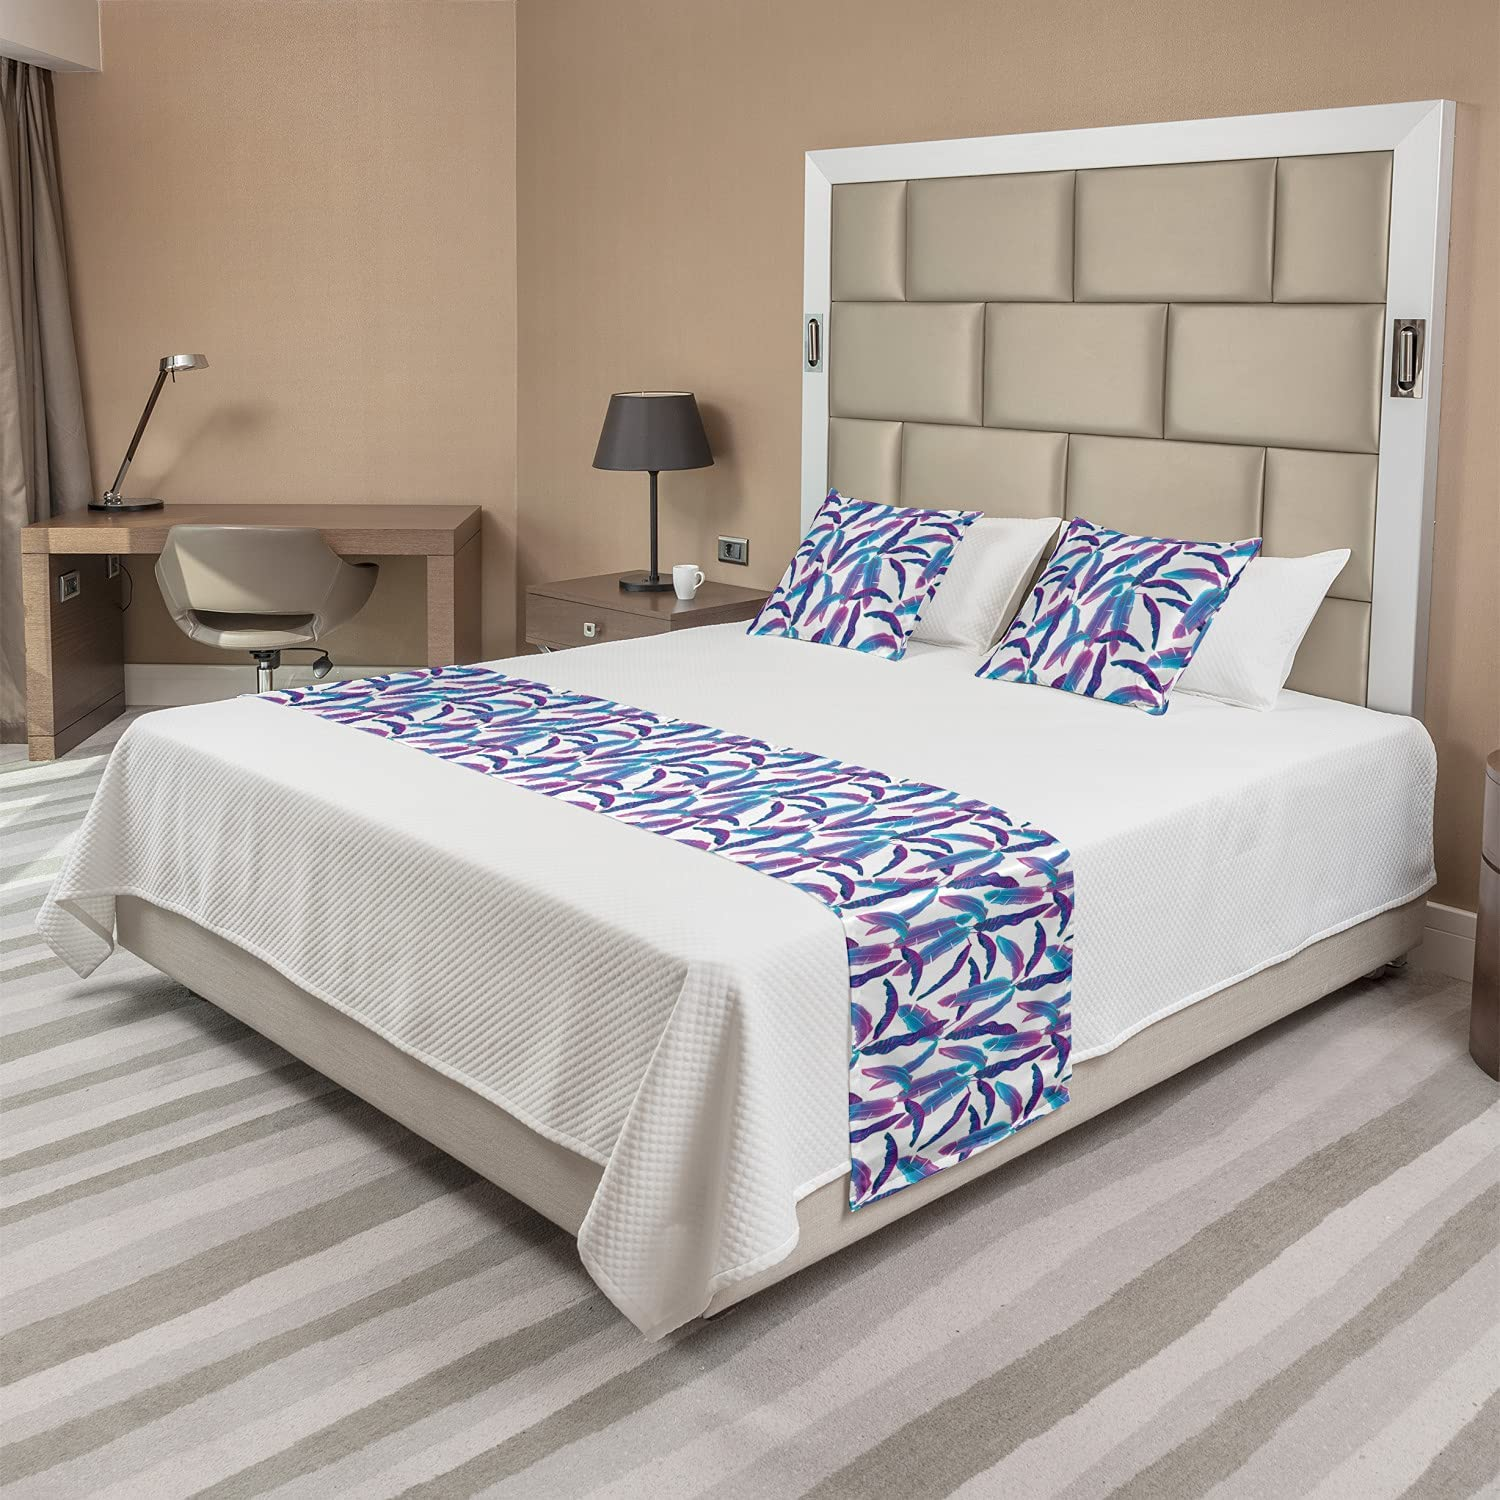 Lunarable Tropical Party Bed Runner Exotic Set Max Limited price 59% OFF Colorf Leaves in